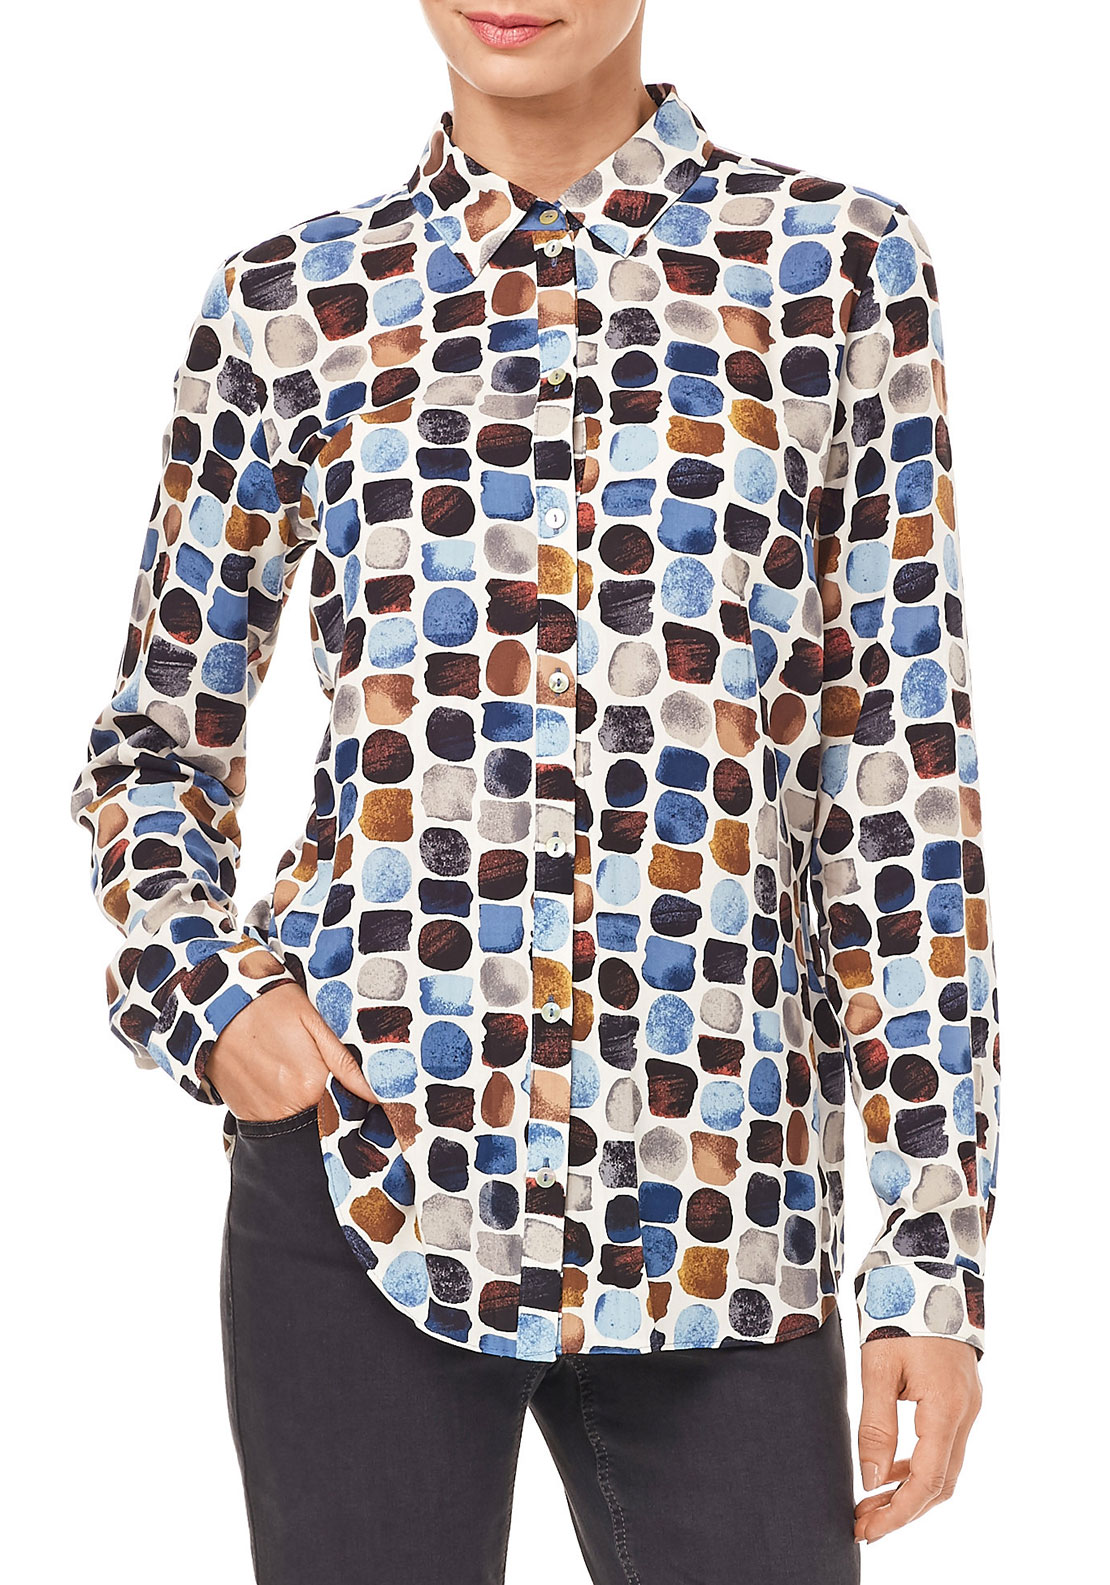 Gerry Weber Printed Long Sleeve Blouse, Multi-Coloured